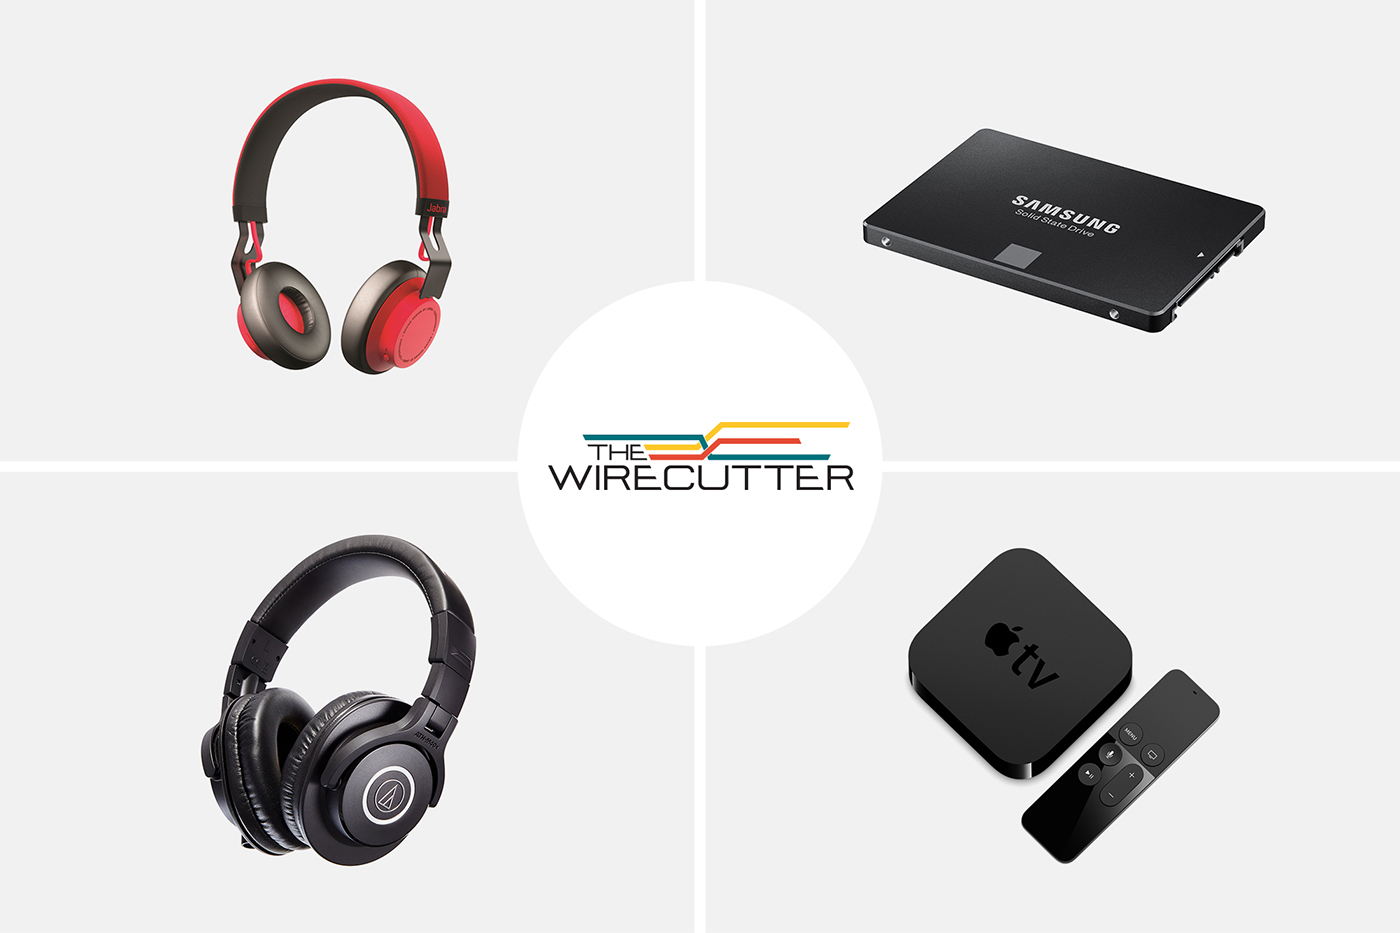 d938a57f882 The Wirecutter s best deals  An Apple TV media streamer and more!